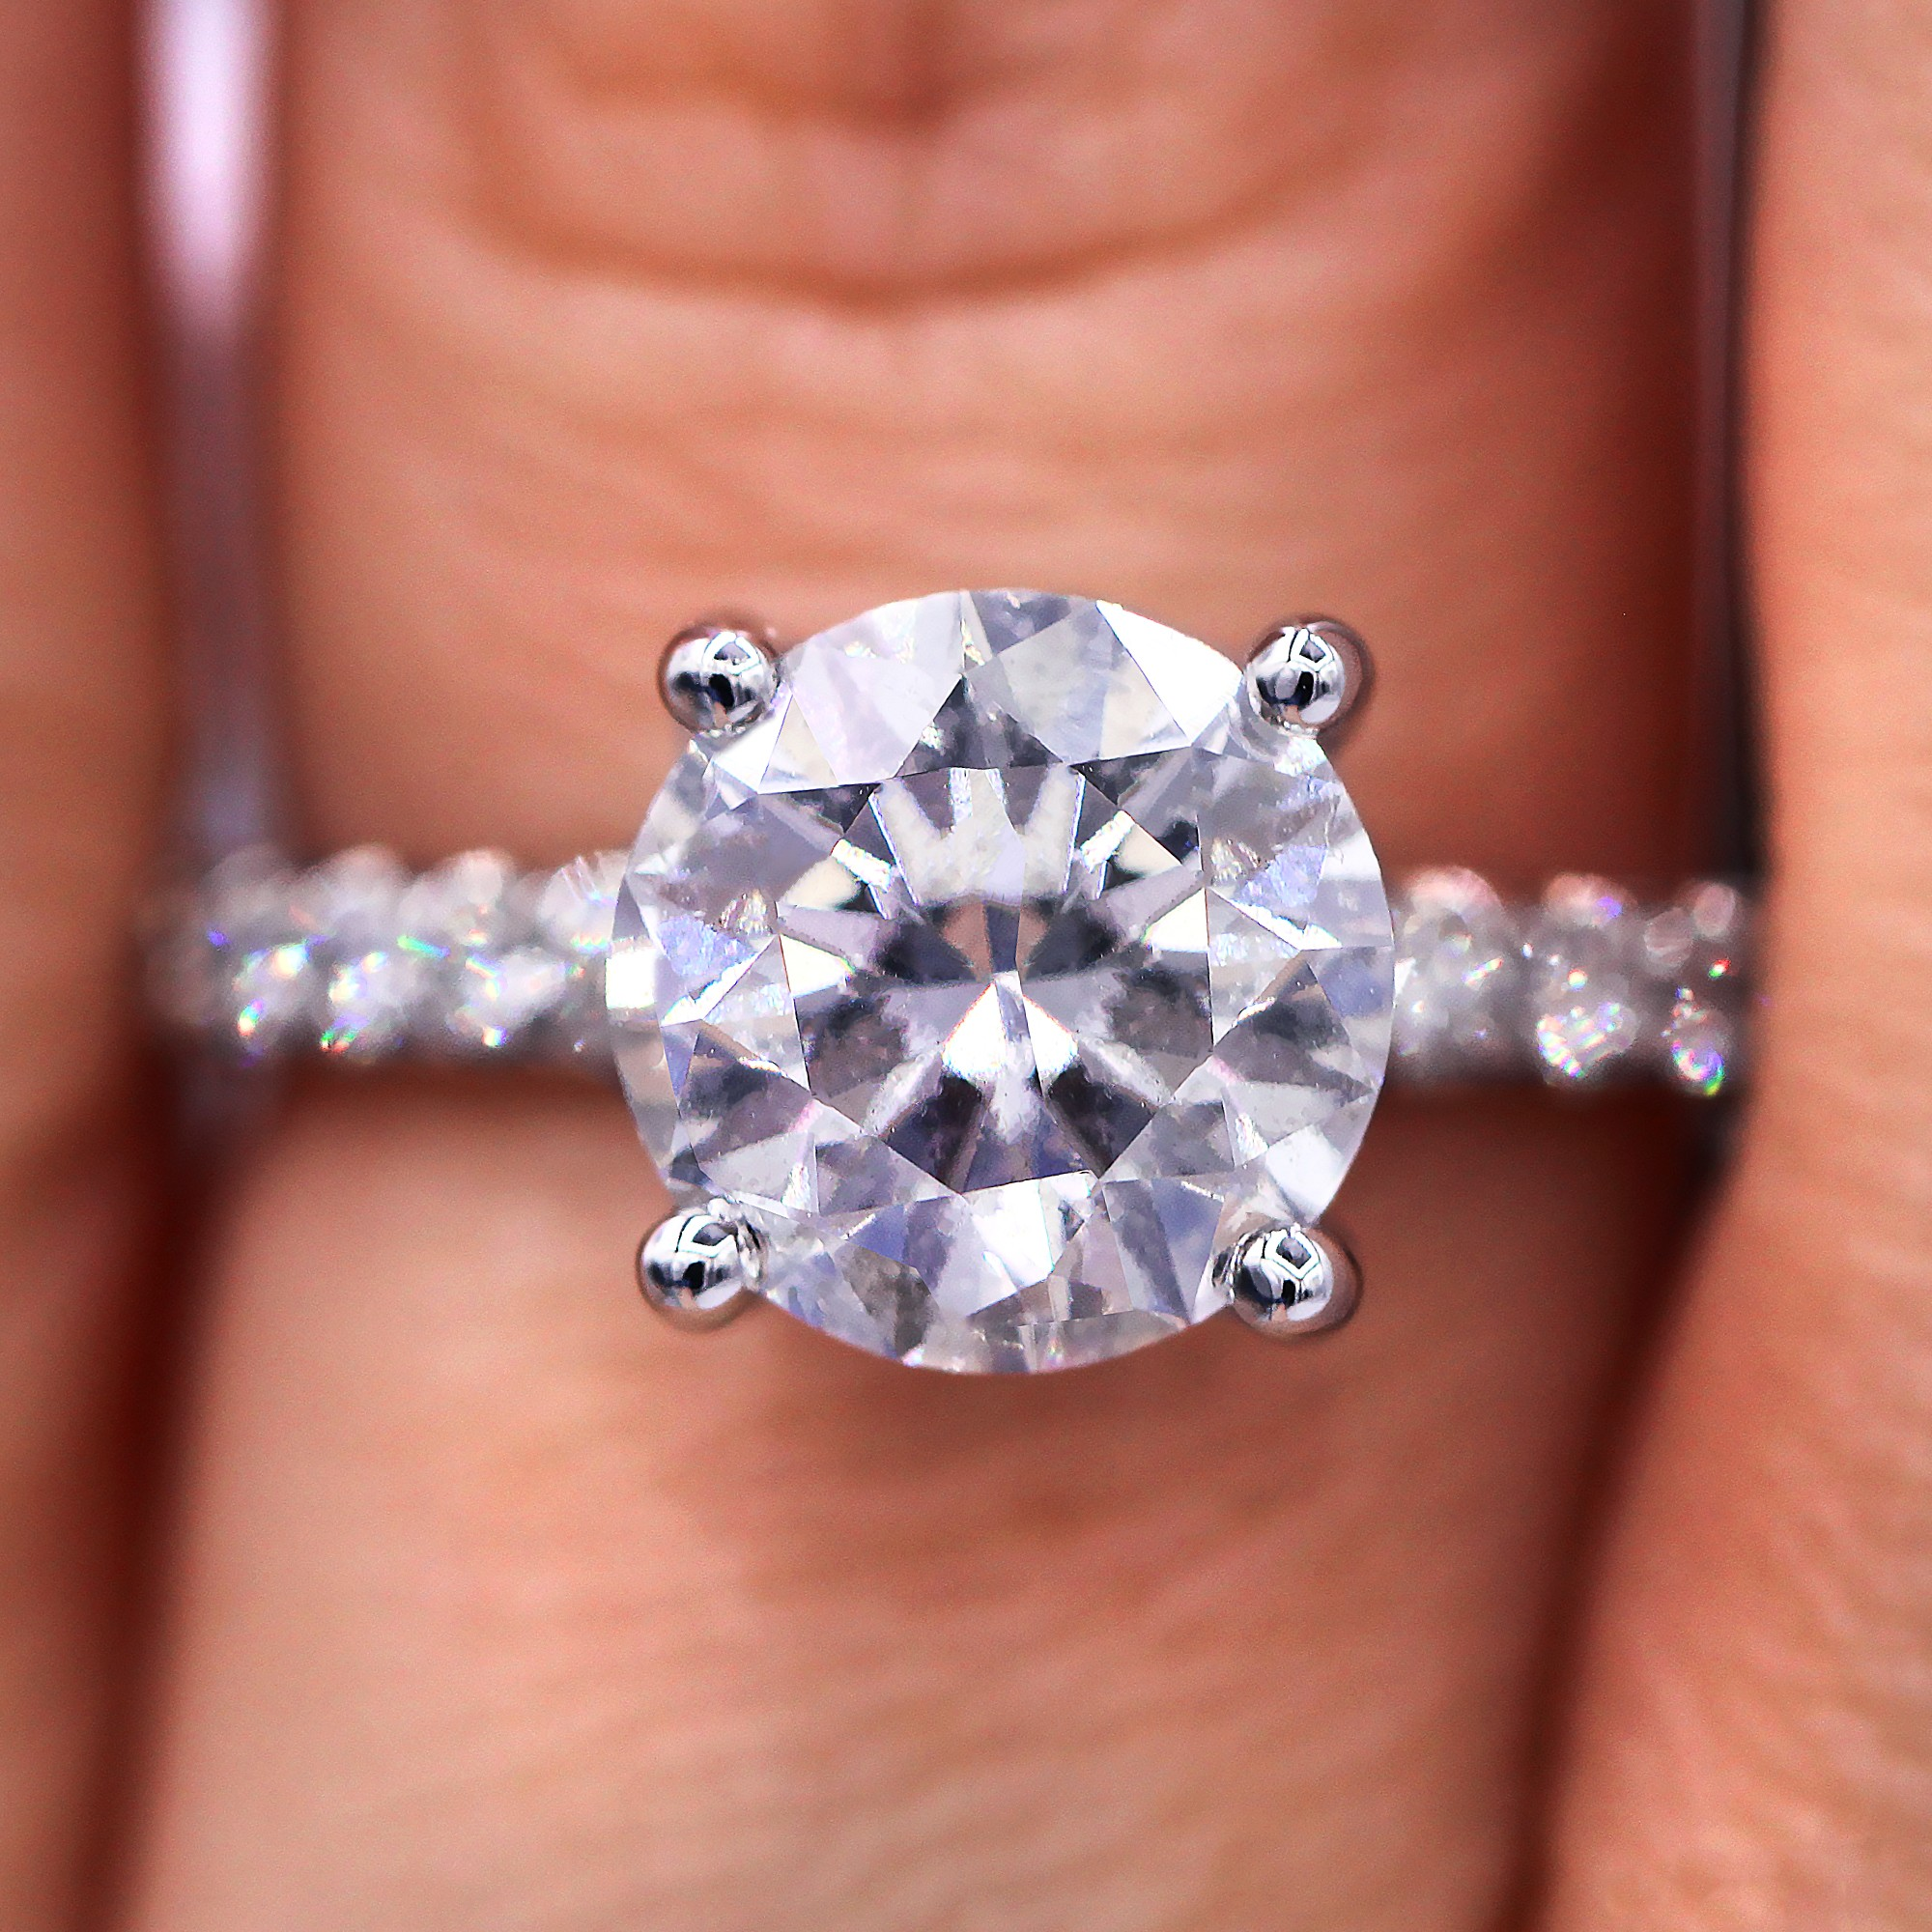 One of kind  2.89cts round cut diamond ring